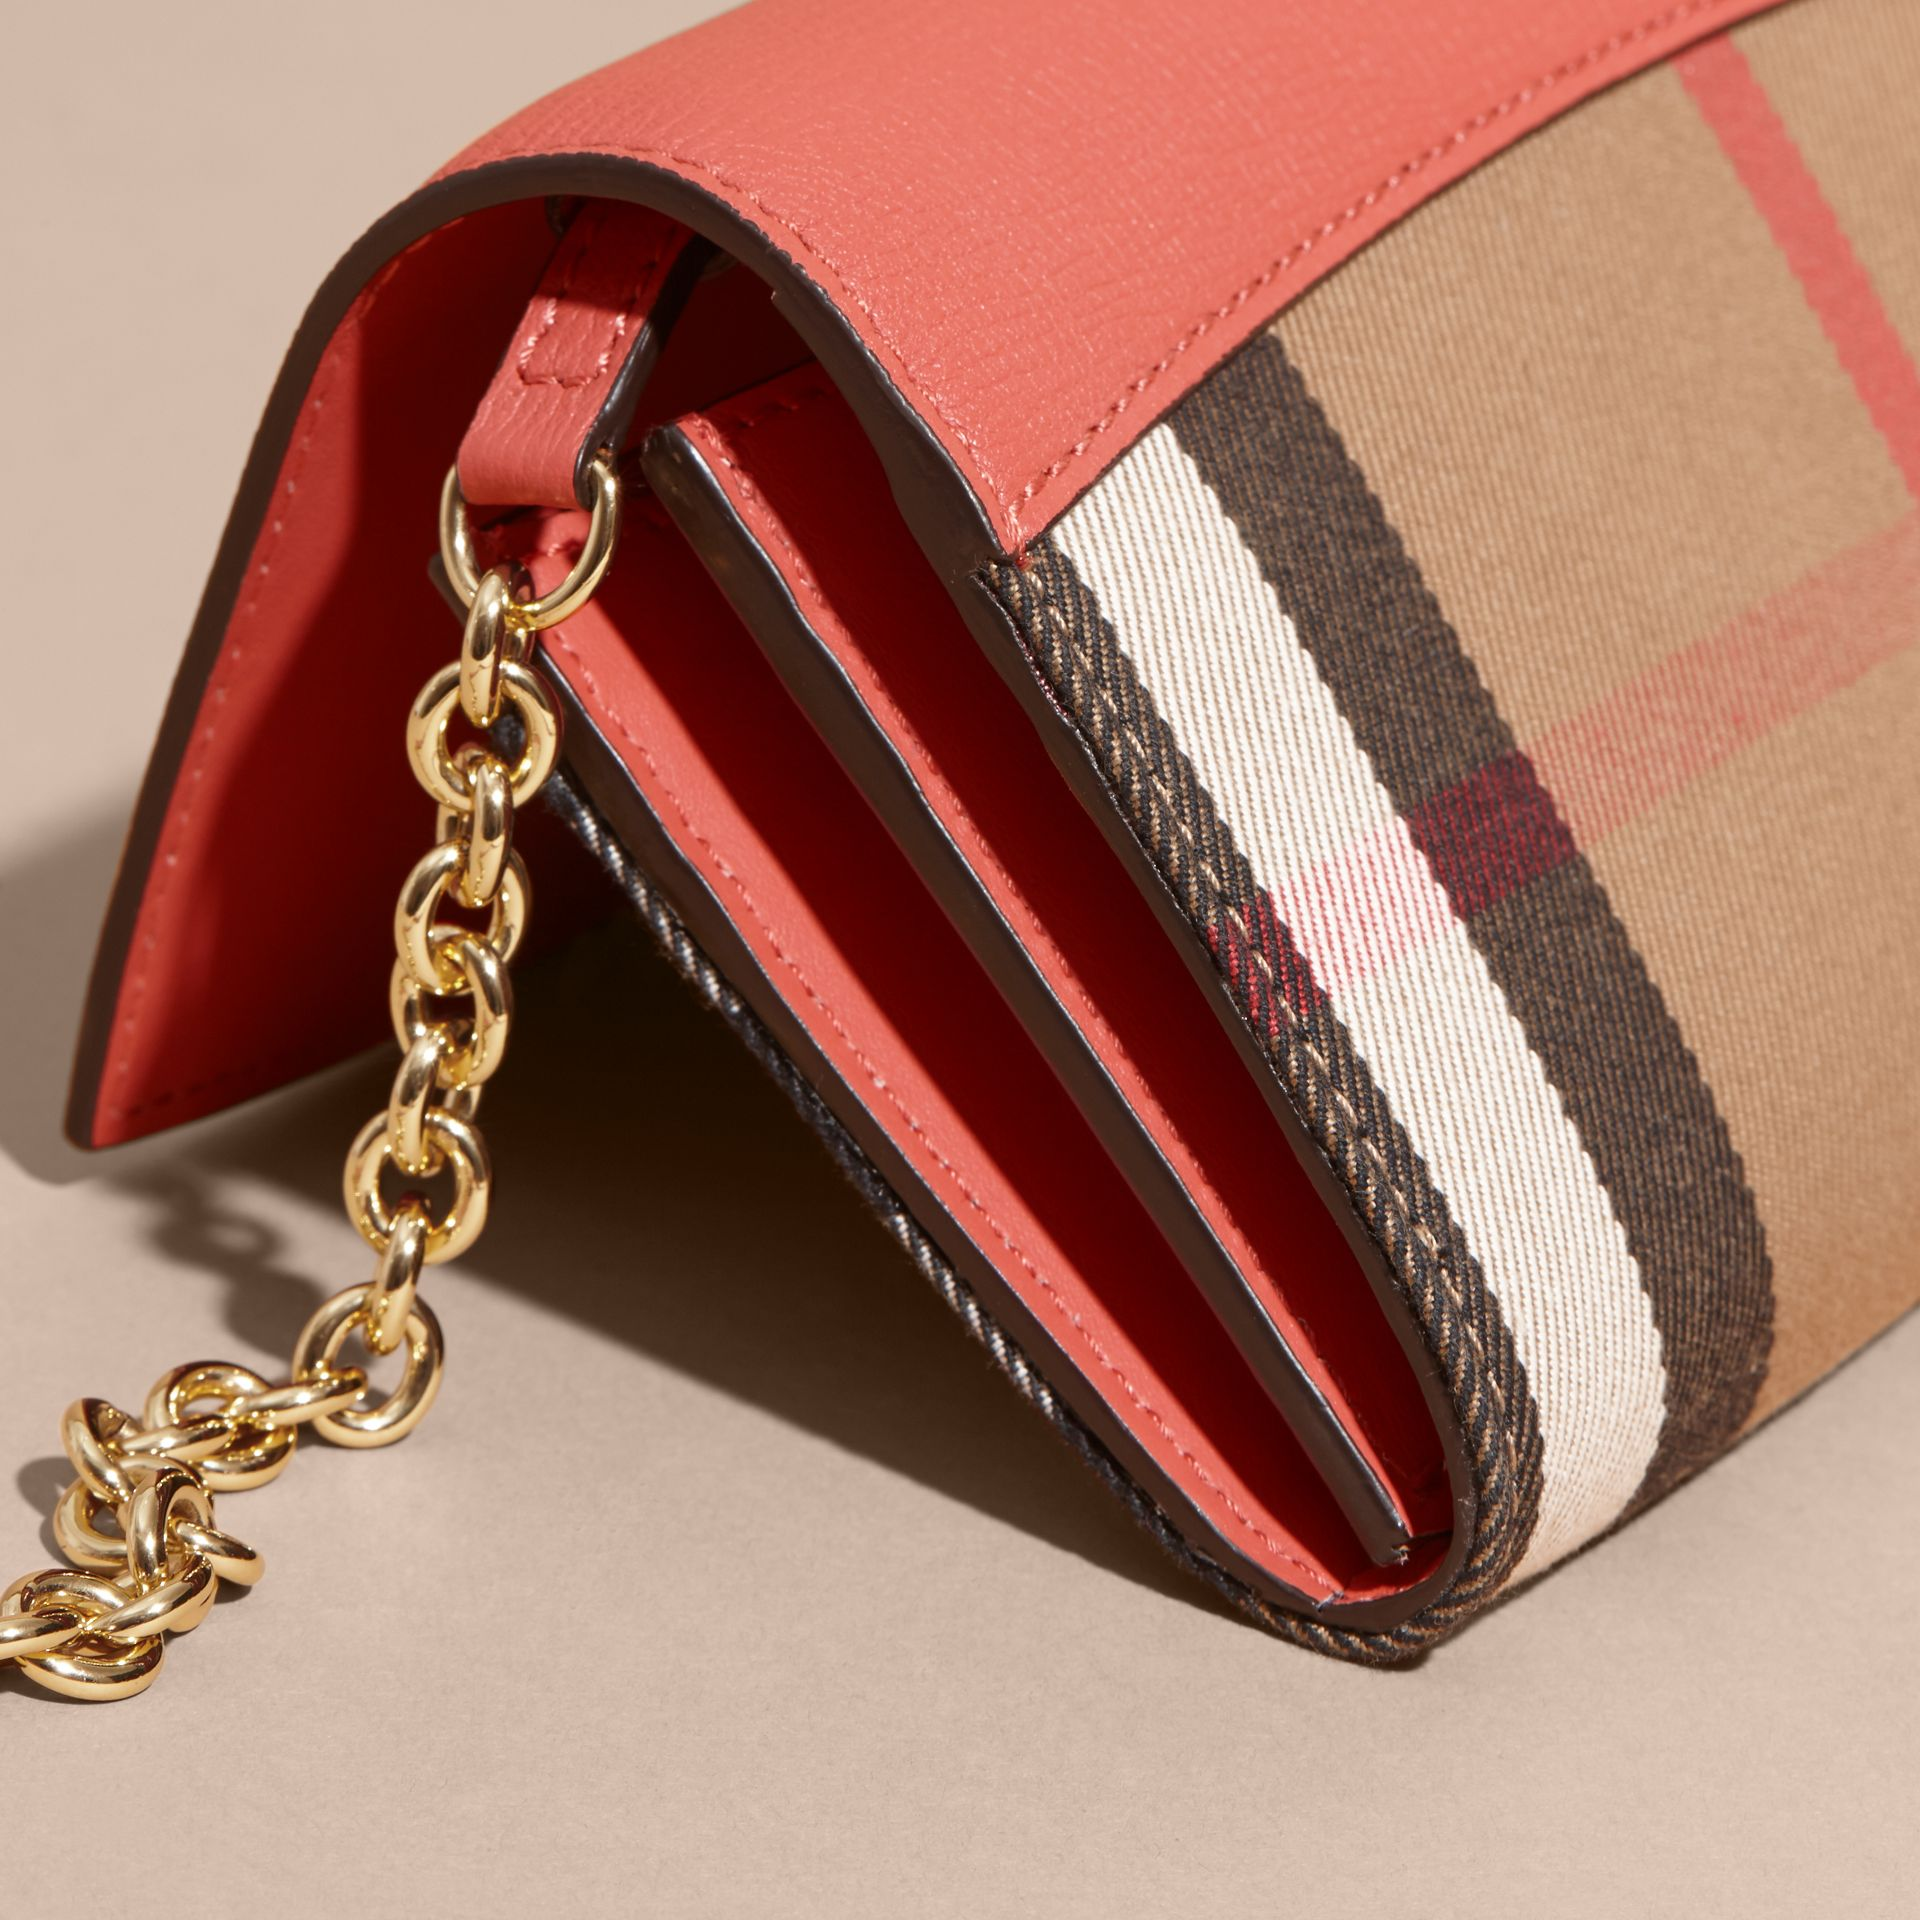 House Check and Leather Wallet with Chain in Cinnamon Red - Women | Burberry - gallery image 6